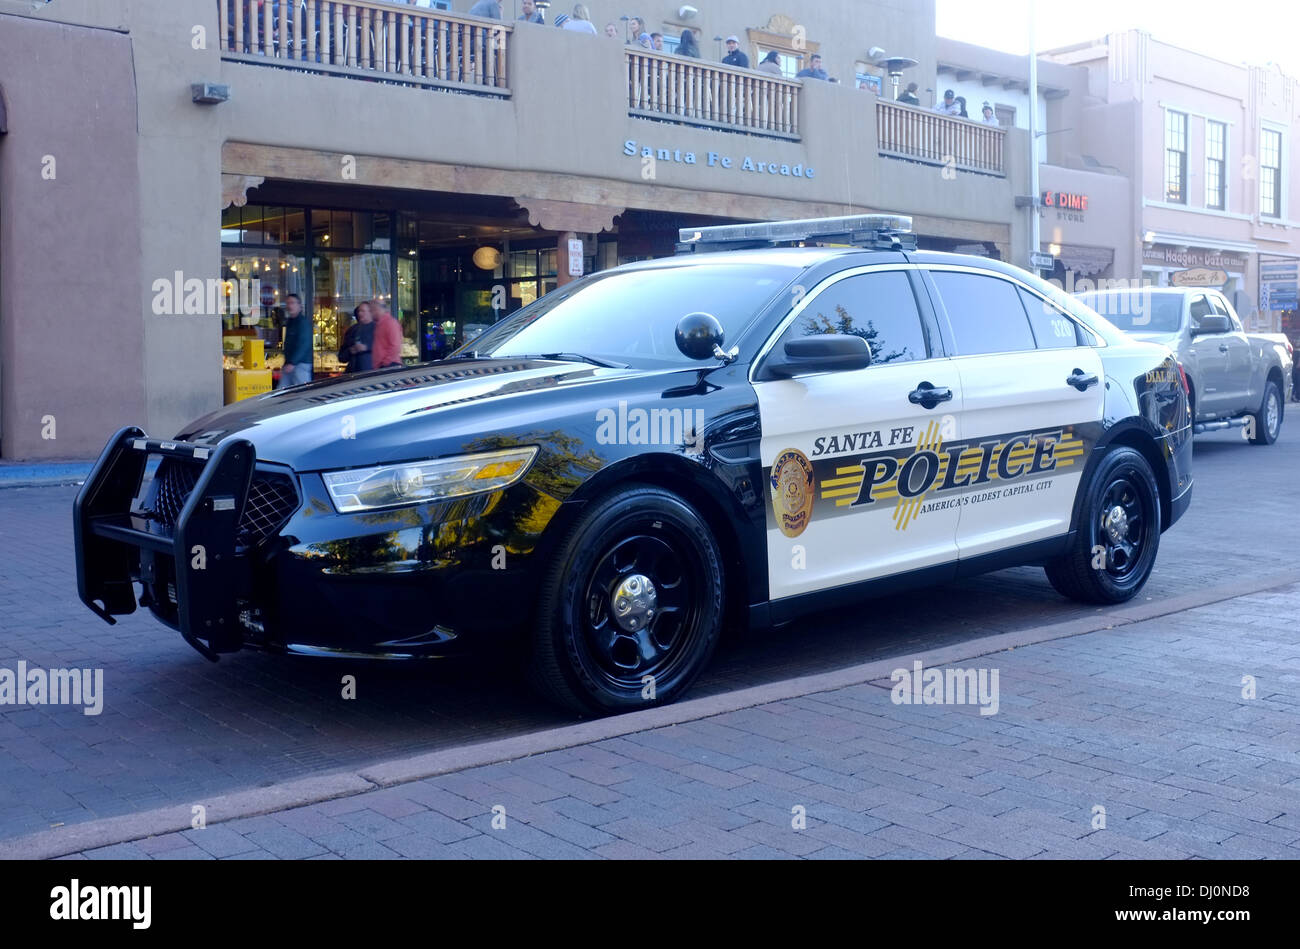 2013 ford taurus police interceptor in santa fe, new mexico - new